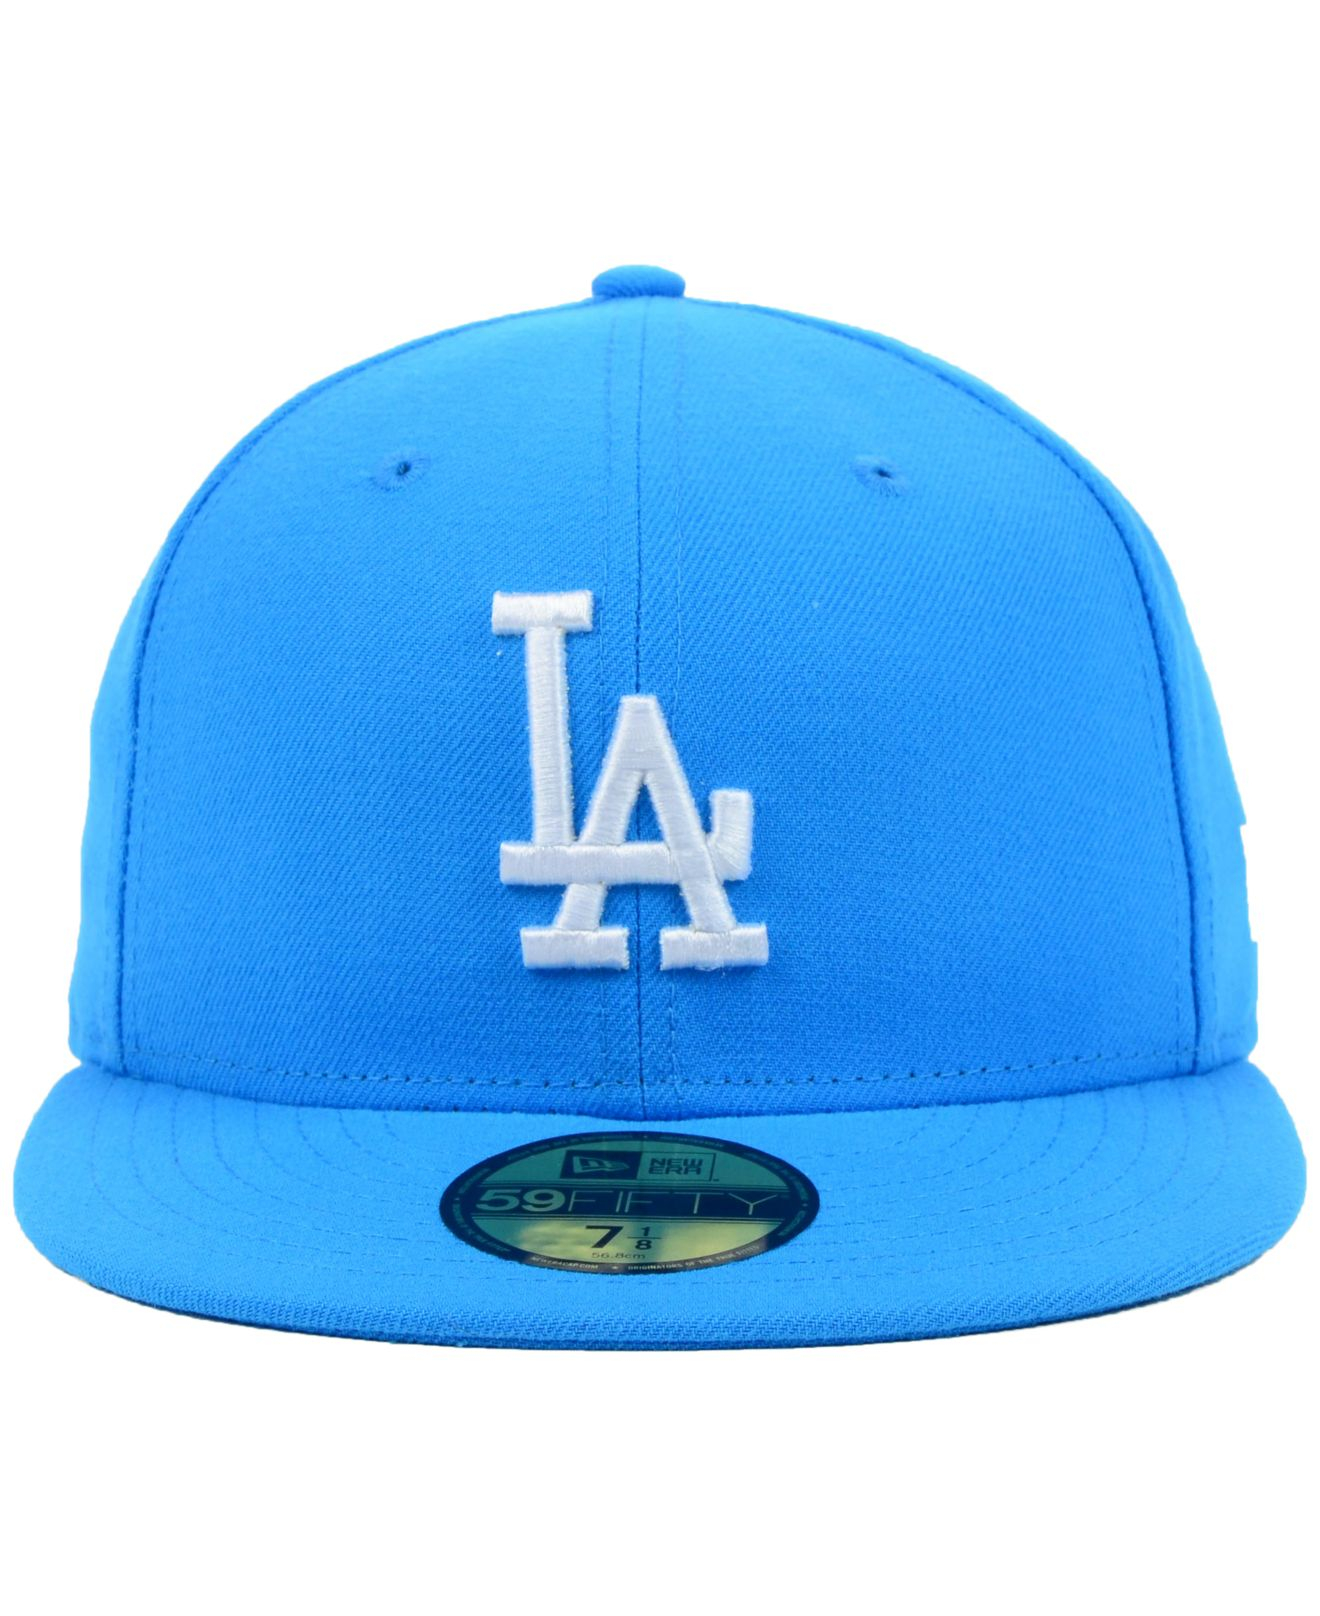 detailed look 5ad1c 32d87 ... low price lyst ktz los angeles dodgers mlb c dub 59fifty cap in blue for  men ...